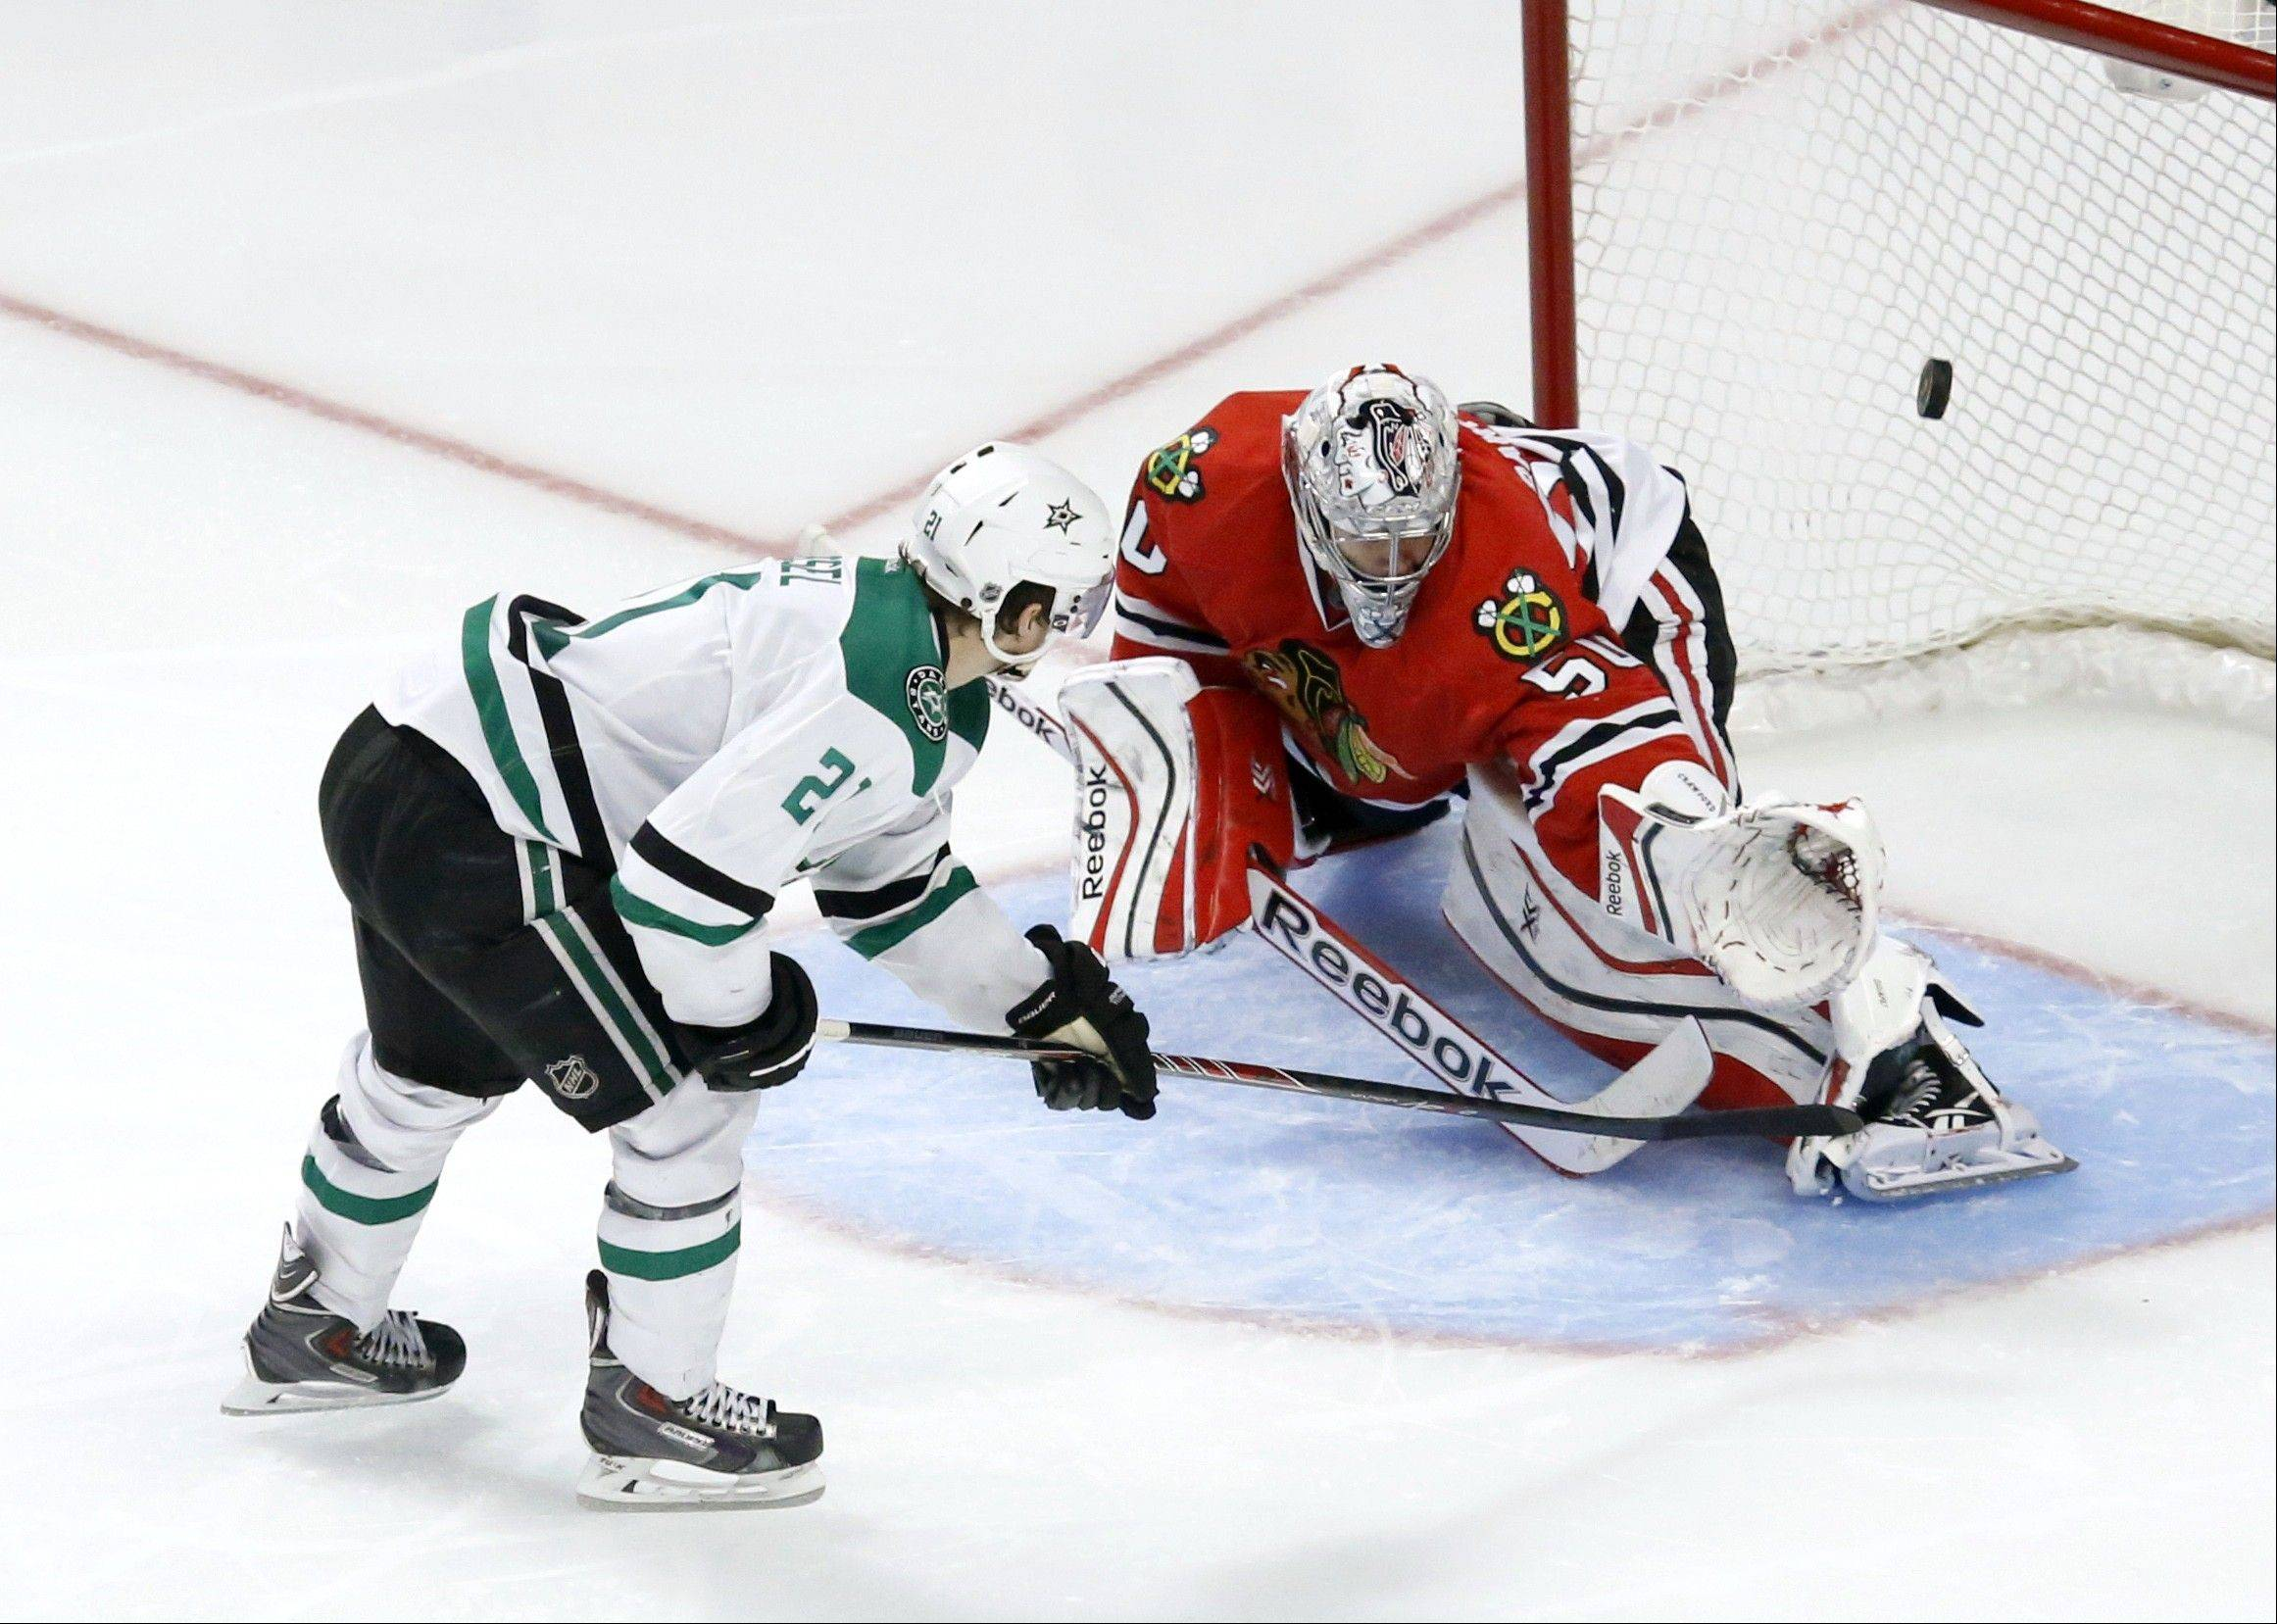 The Stars' Antoine Roussel scores past Blackhawks goalie Corey Crawford on a penalty shot for the game-deciding goal in the third period Tuesday night.